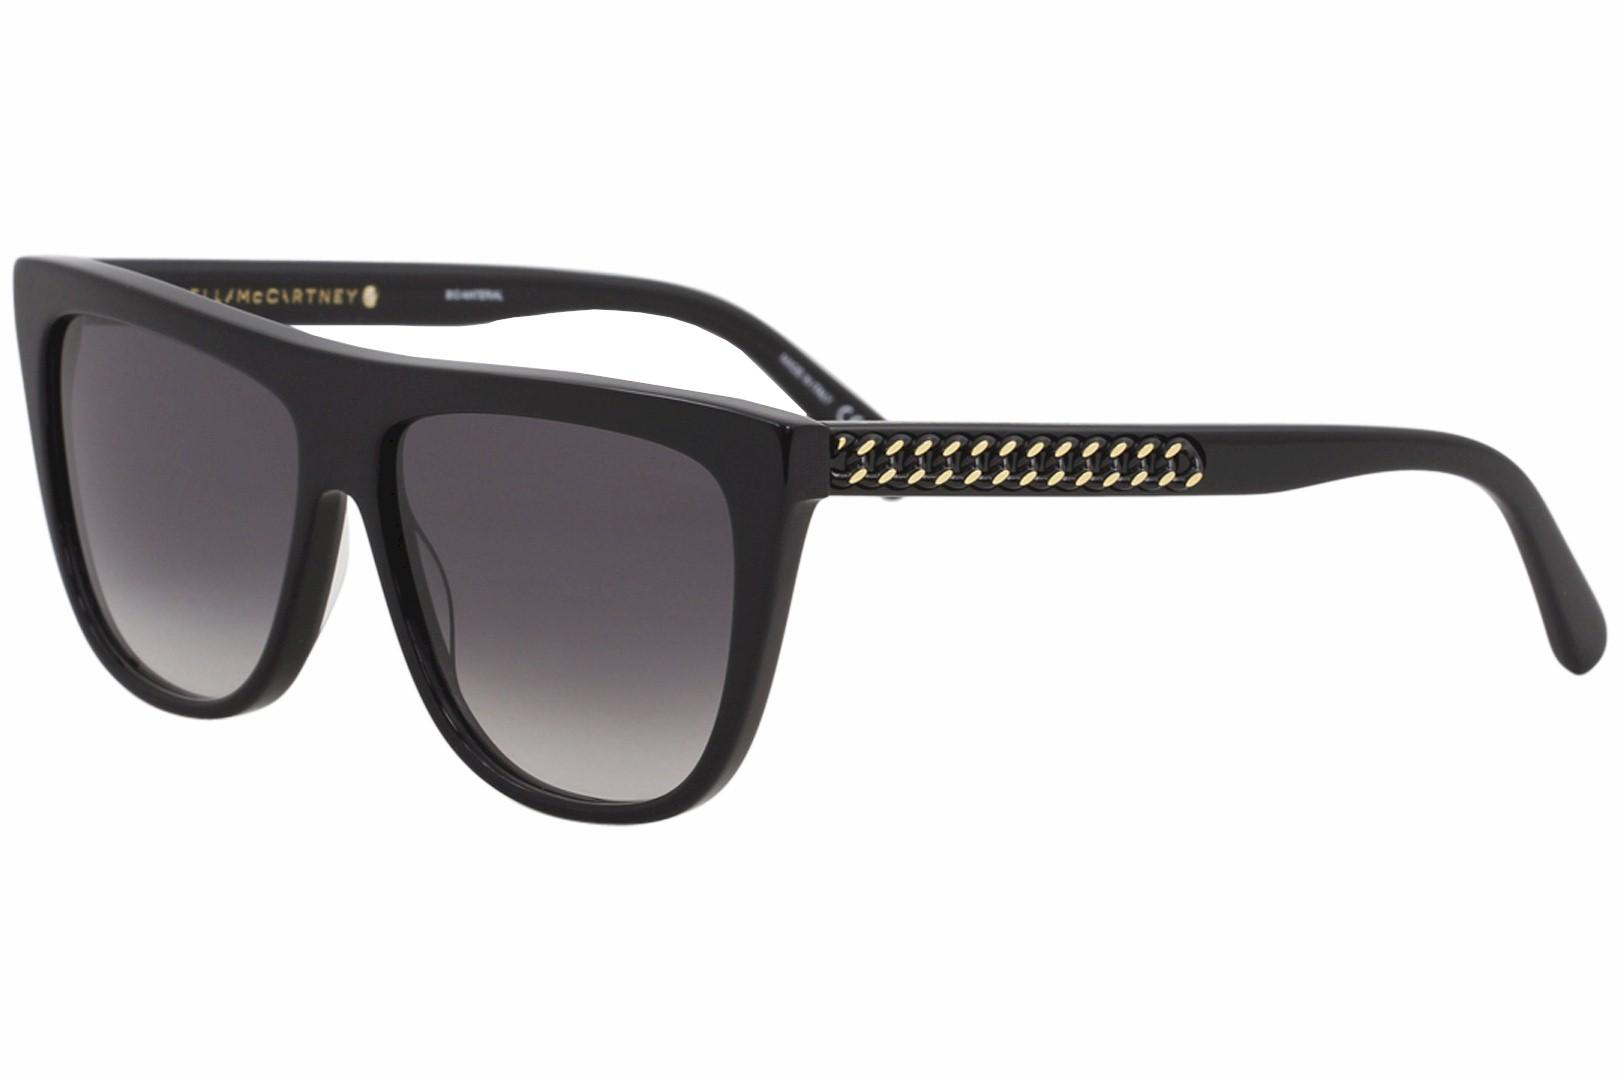 Image of Stella McCartney Falabella SC0149S SC/0149/S 001 Black Square Sunglasses 56mm - Black/Gray Gradient   001 - Lens 56 Bridge 14 Temple 145mm